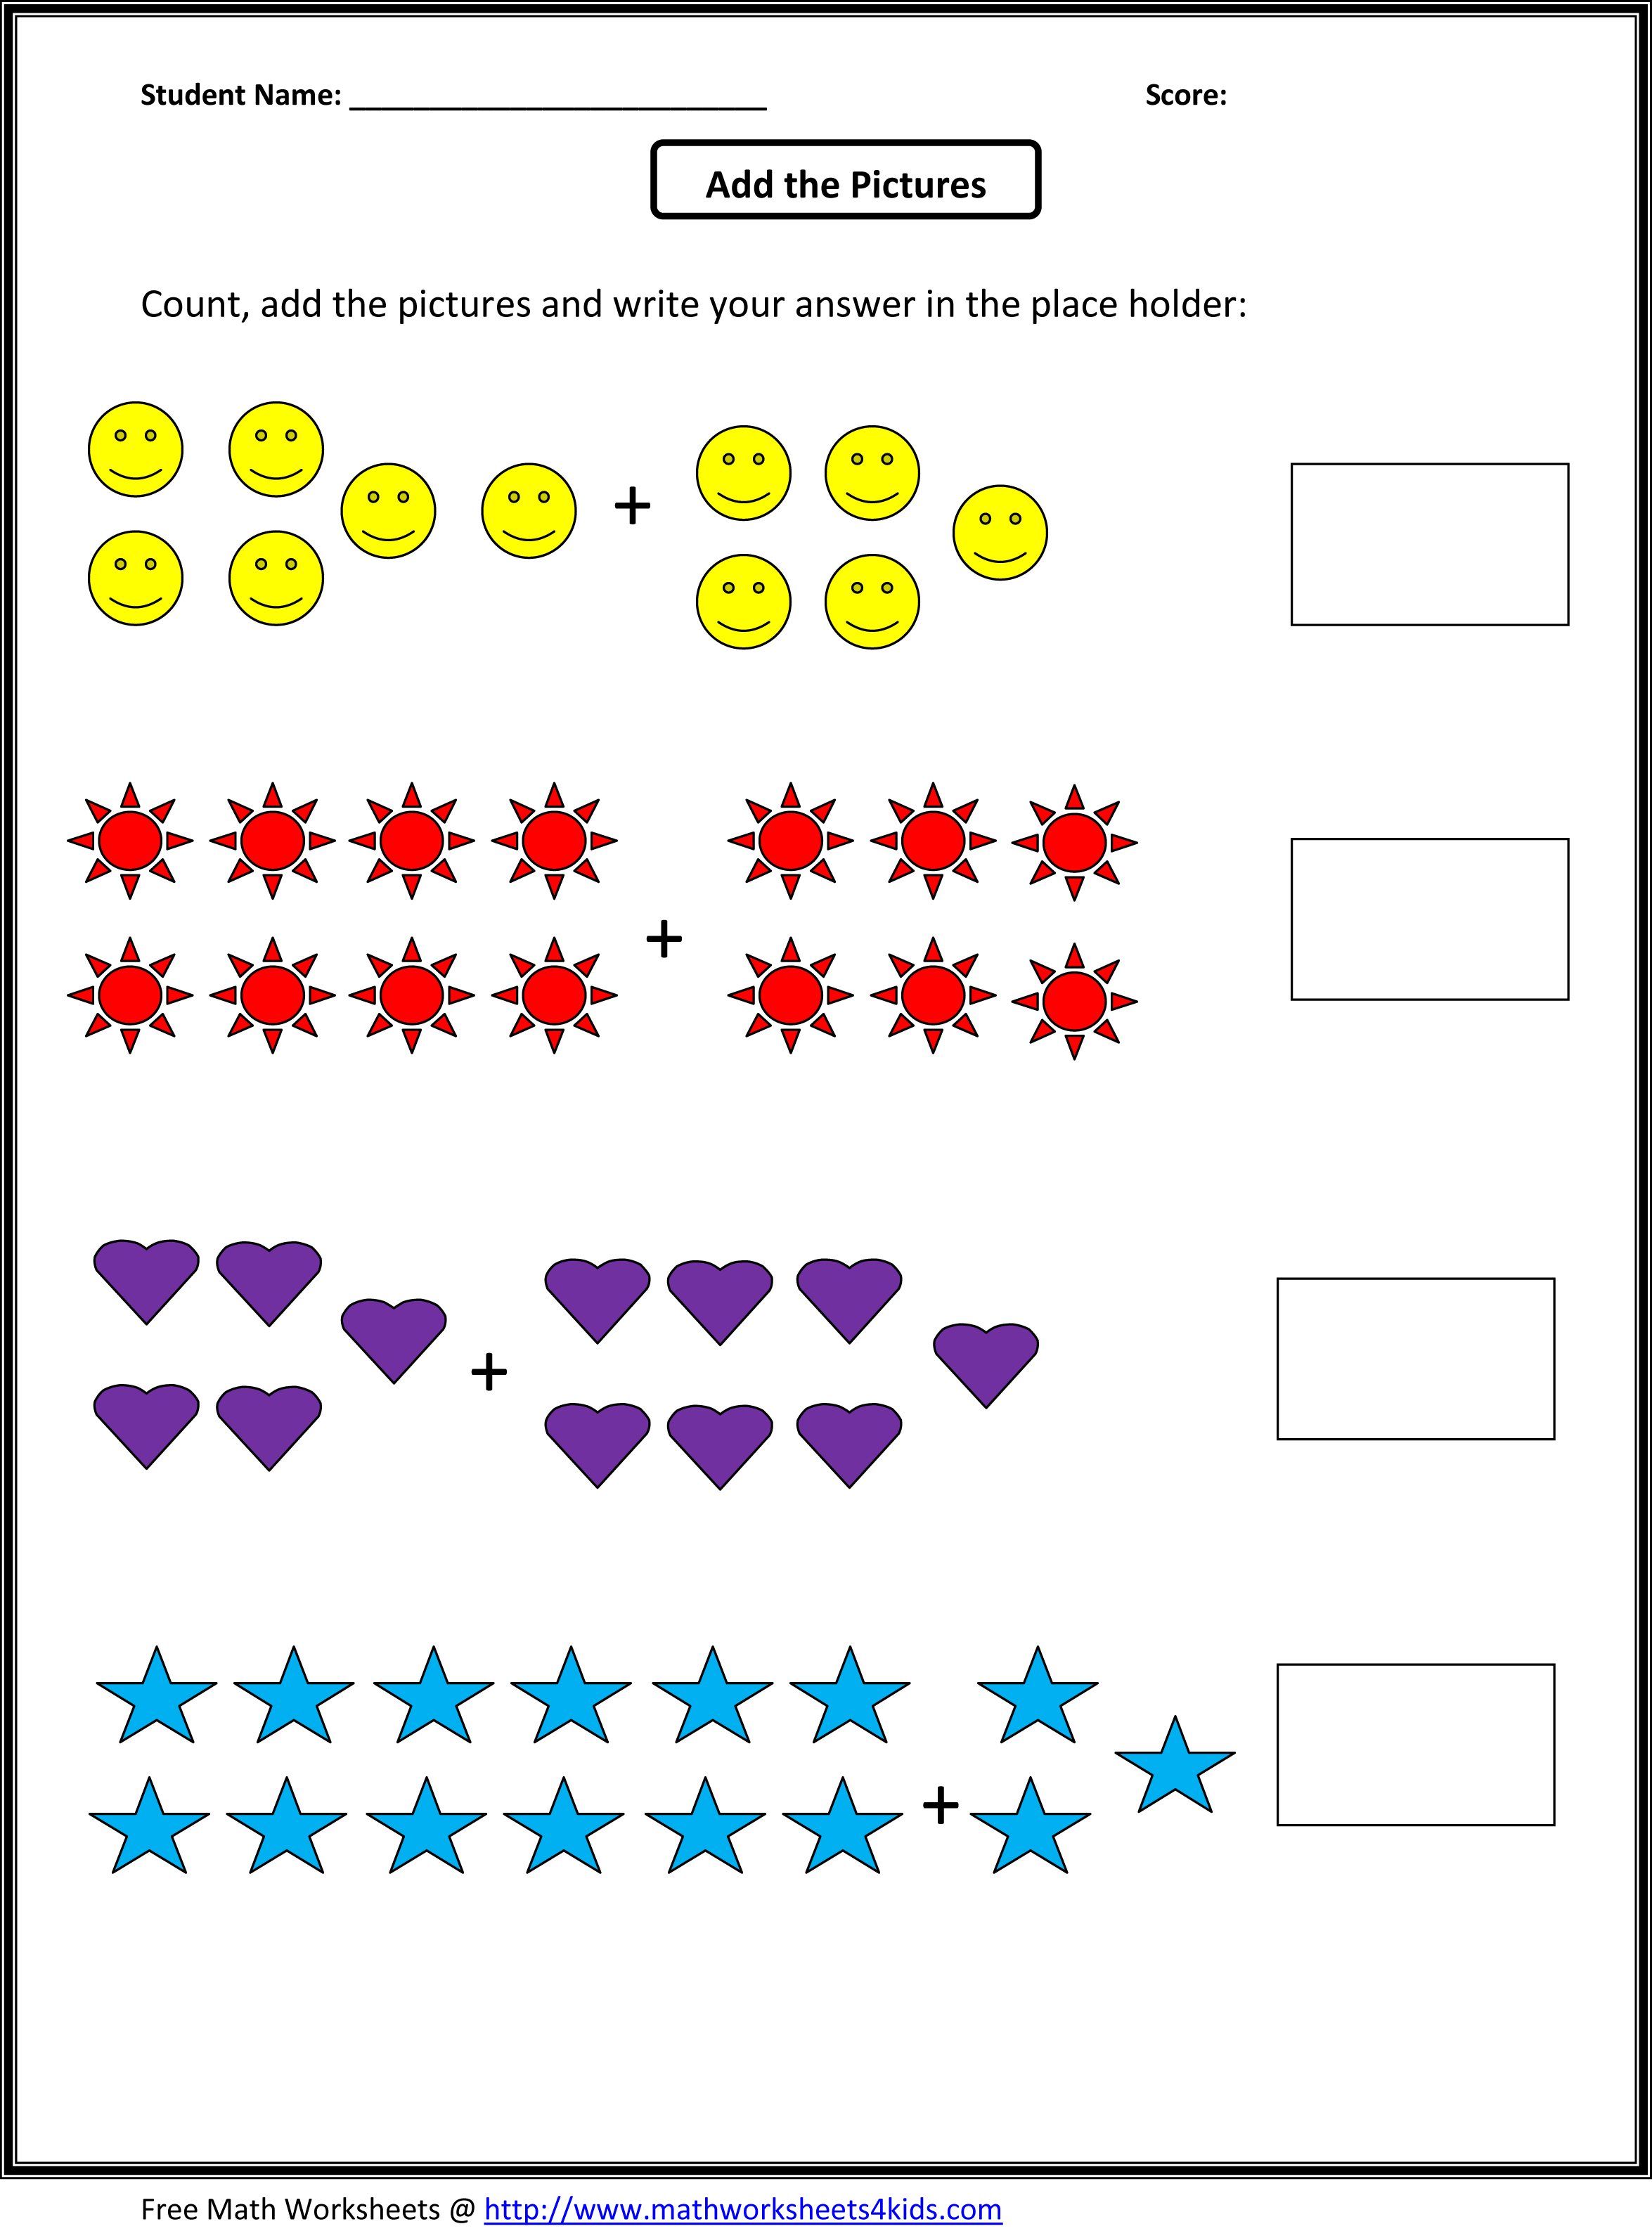 Weirdmailus  Winsome Grade  Maths Worksheet  Reocurent With Licious Math Worksheets For St Grade Free  Reocurent With Agreeable Free Subtraction Worksheets For First Grade Also Worksheets For Reading Comprehension In Addition Parts Of A Flower For Kids Worksheet And Homeostasis Worksheets As Well As Chemical Naming Worksheet Additionally How To Budget Your Money Worksheet From Reocurentcom With Weirdmailus  Licious Grade  Maths Worksheet  Reocurent With Agreeable Math Worksheets For St Grade Free  Reocurent And Winsome Free Subtraction Worksheets For First Grade Also Worksheets For Reading Comprehension In Addition Parts Of A Flower For Kids Worksheet From Reocurentcom